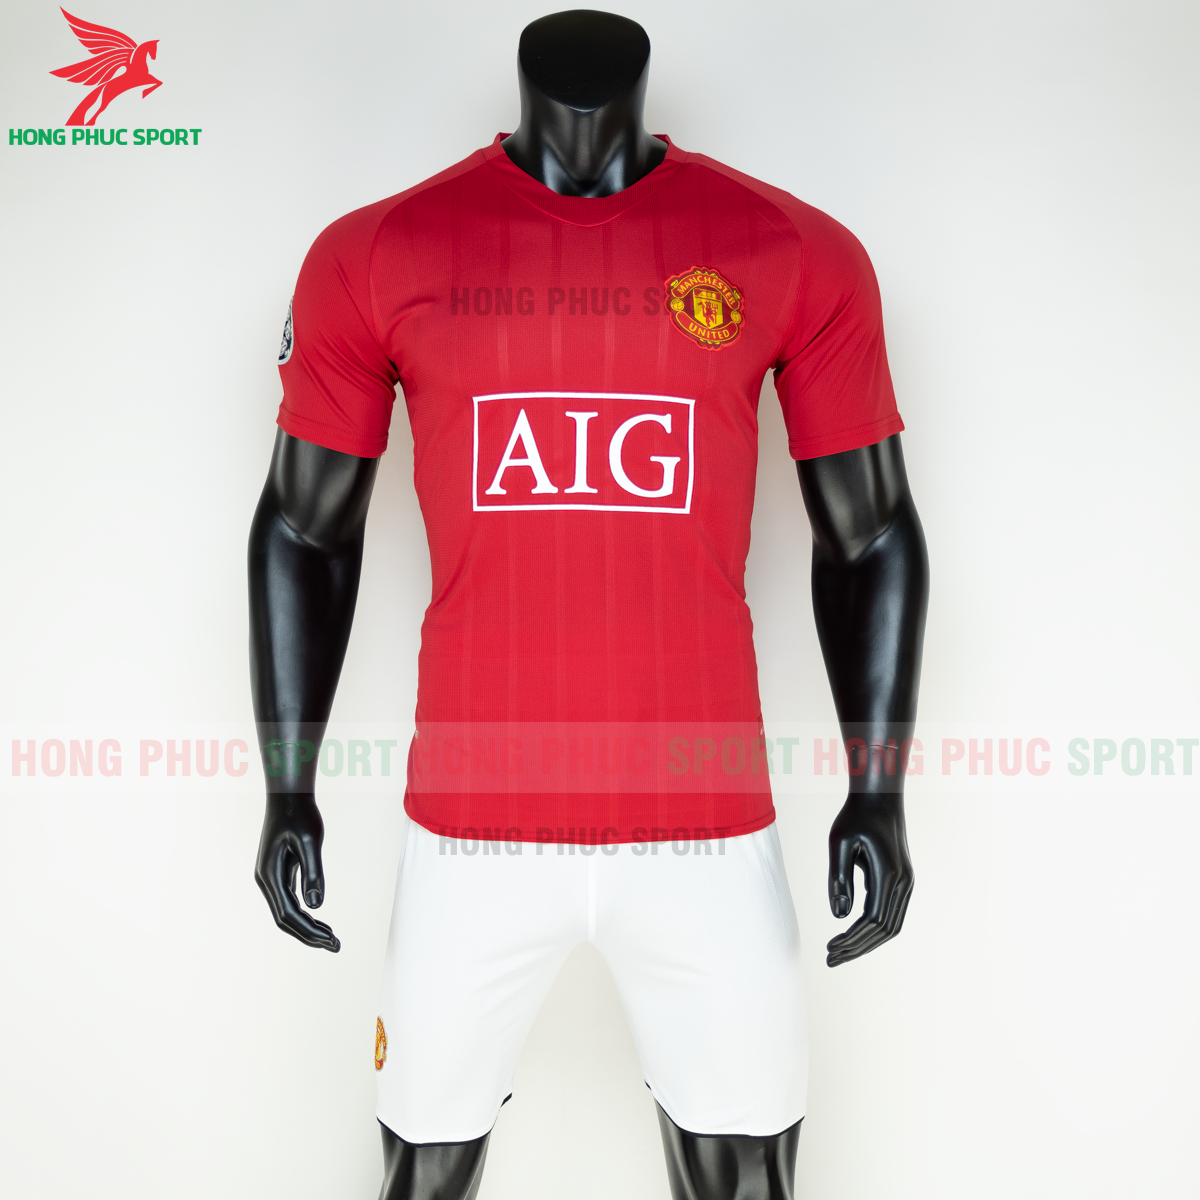 https://cdn.hongphucsport.com/unsafe/s4.shopbay.vn/files/285/ao-manchester-united-2008-2009-san-nha-hang-thailand-1-5fb1fa6263f53.png